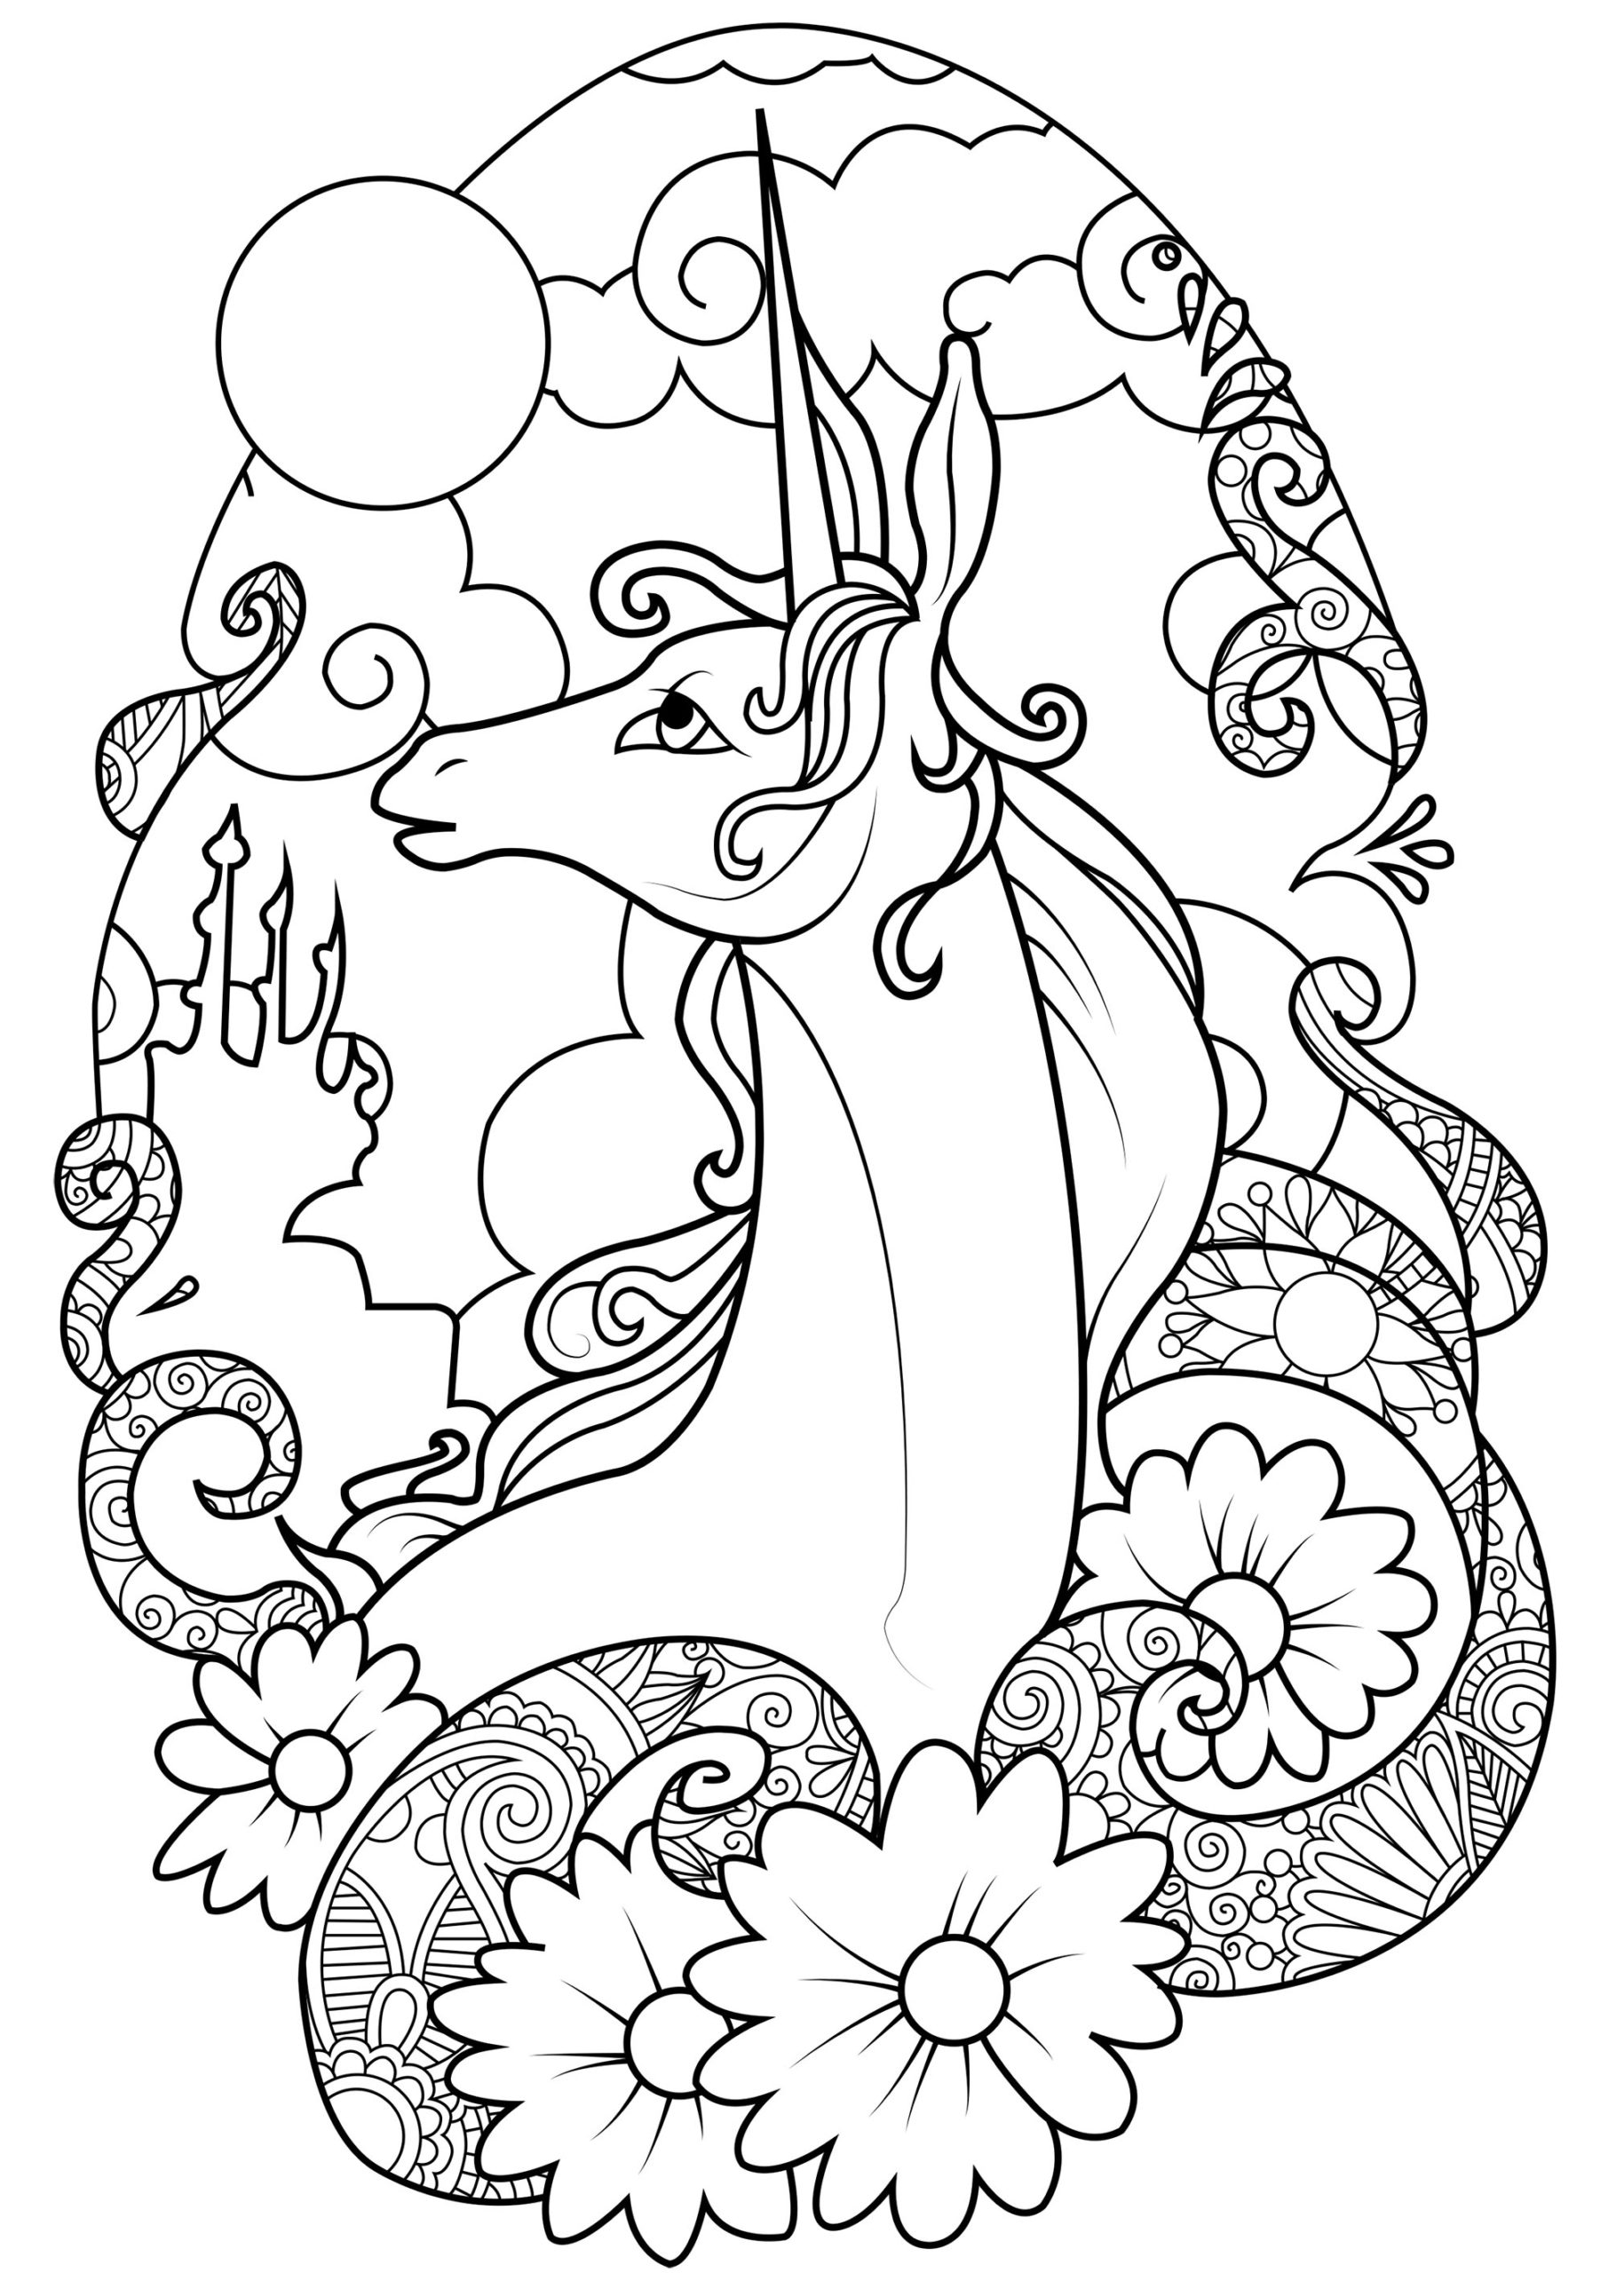 Coloring Pages : Fairy Unicorn Unicorns Adult Coloring Fairies And ...